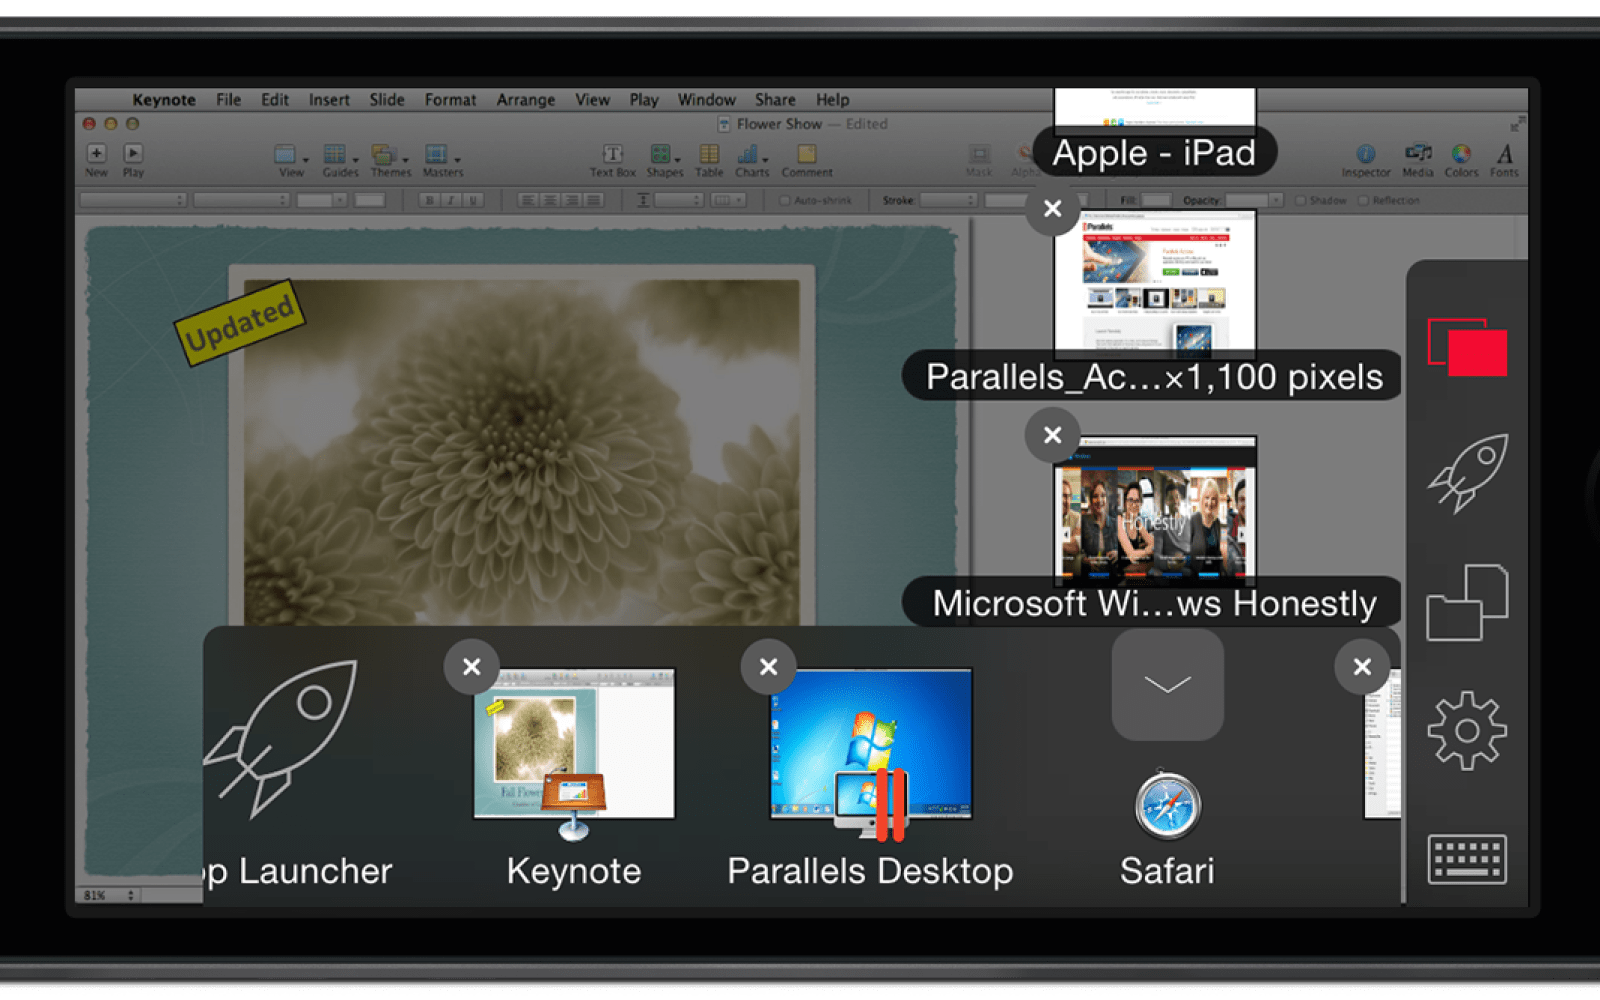 Parallels Access remote access app jumps from iPad to iPhone, gains Finder-like functionality